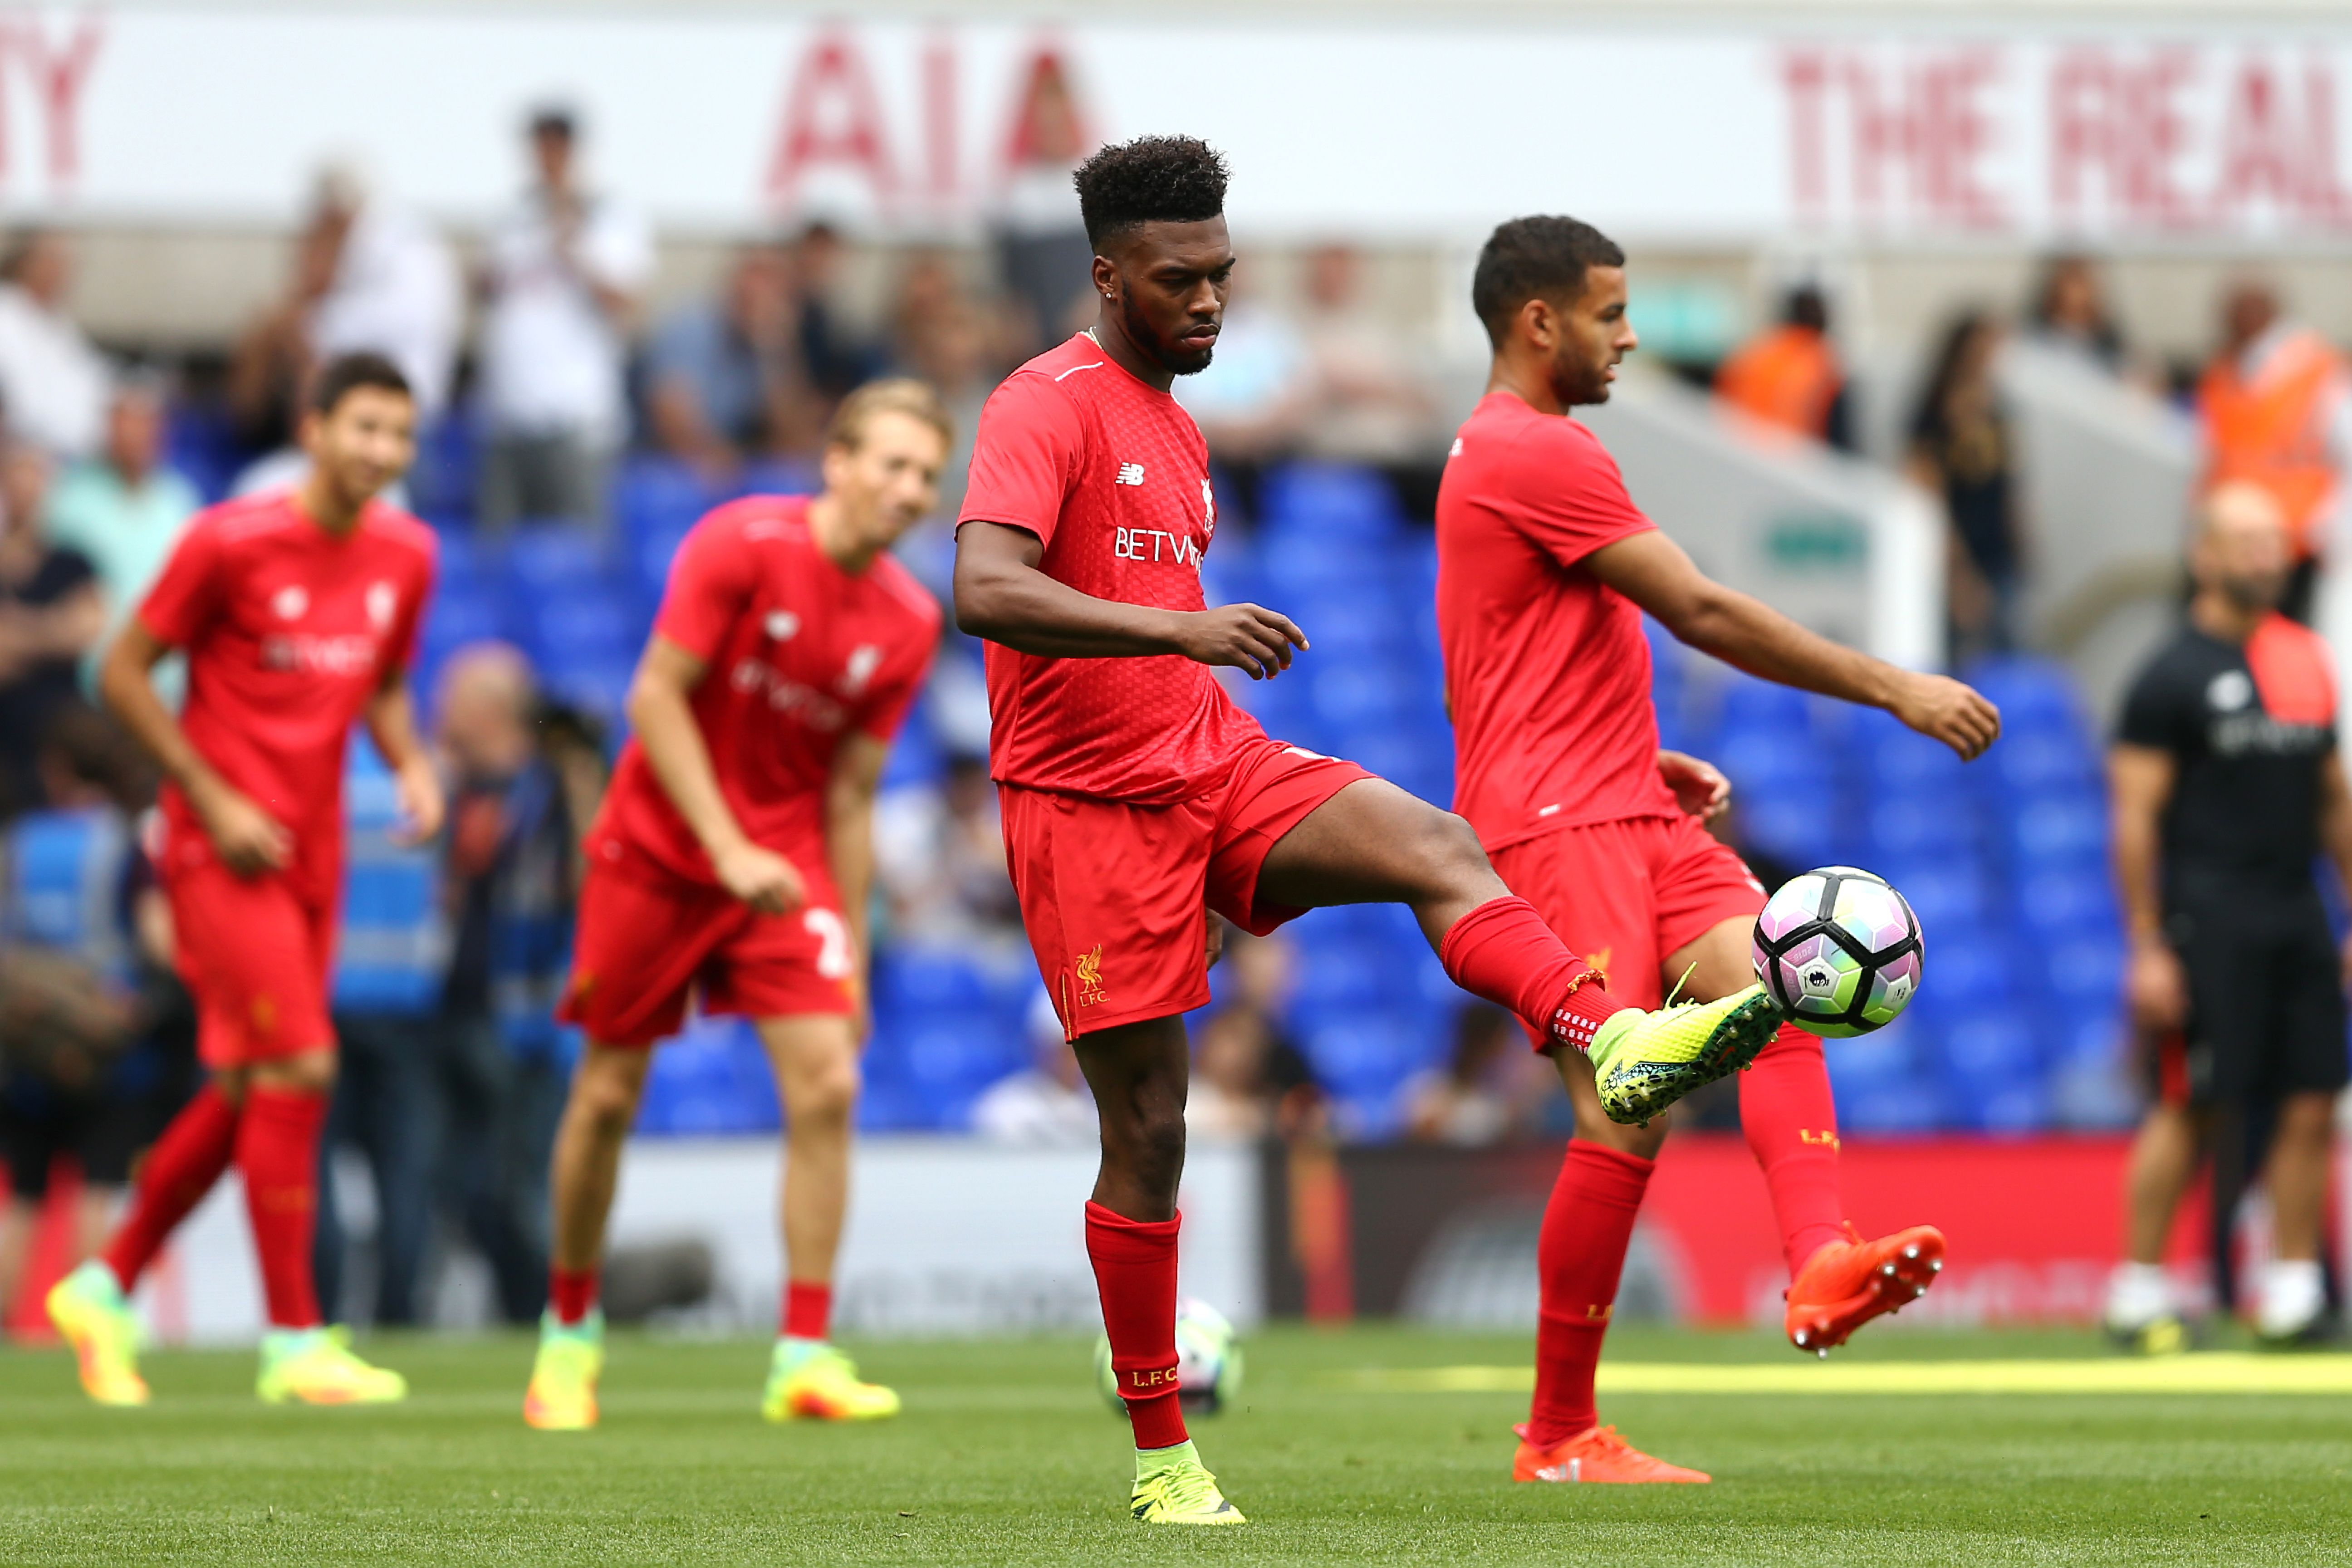 Daniel Sturridge's powers at Liverpool could be on the wane, says Jamie Carragher